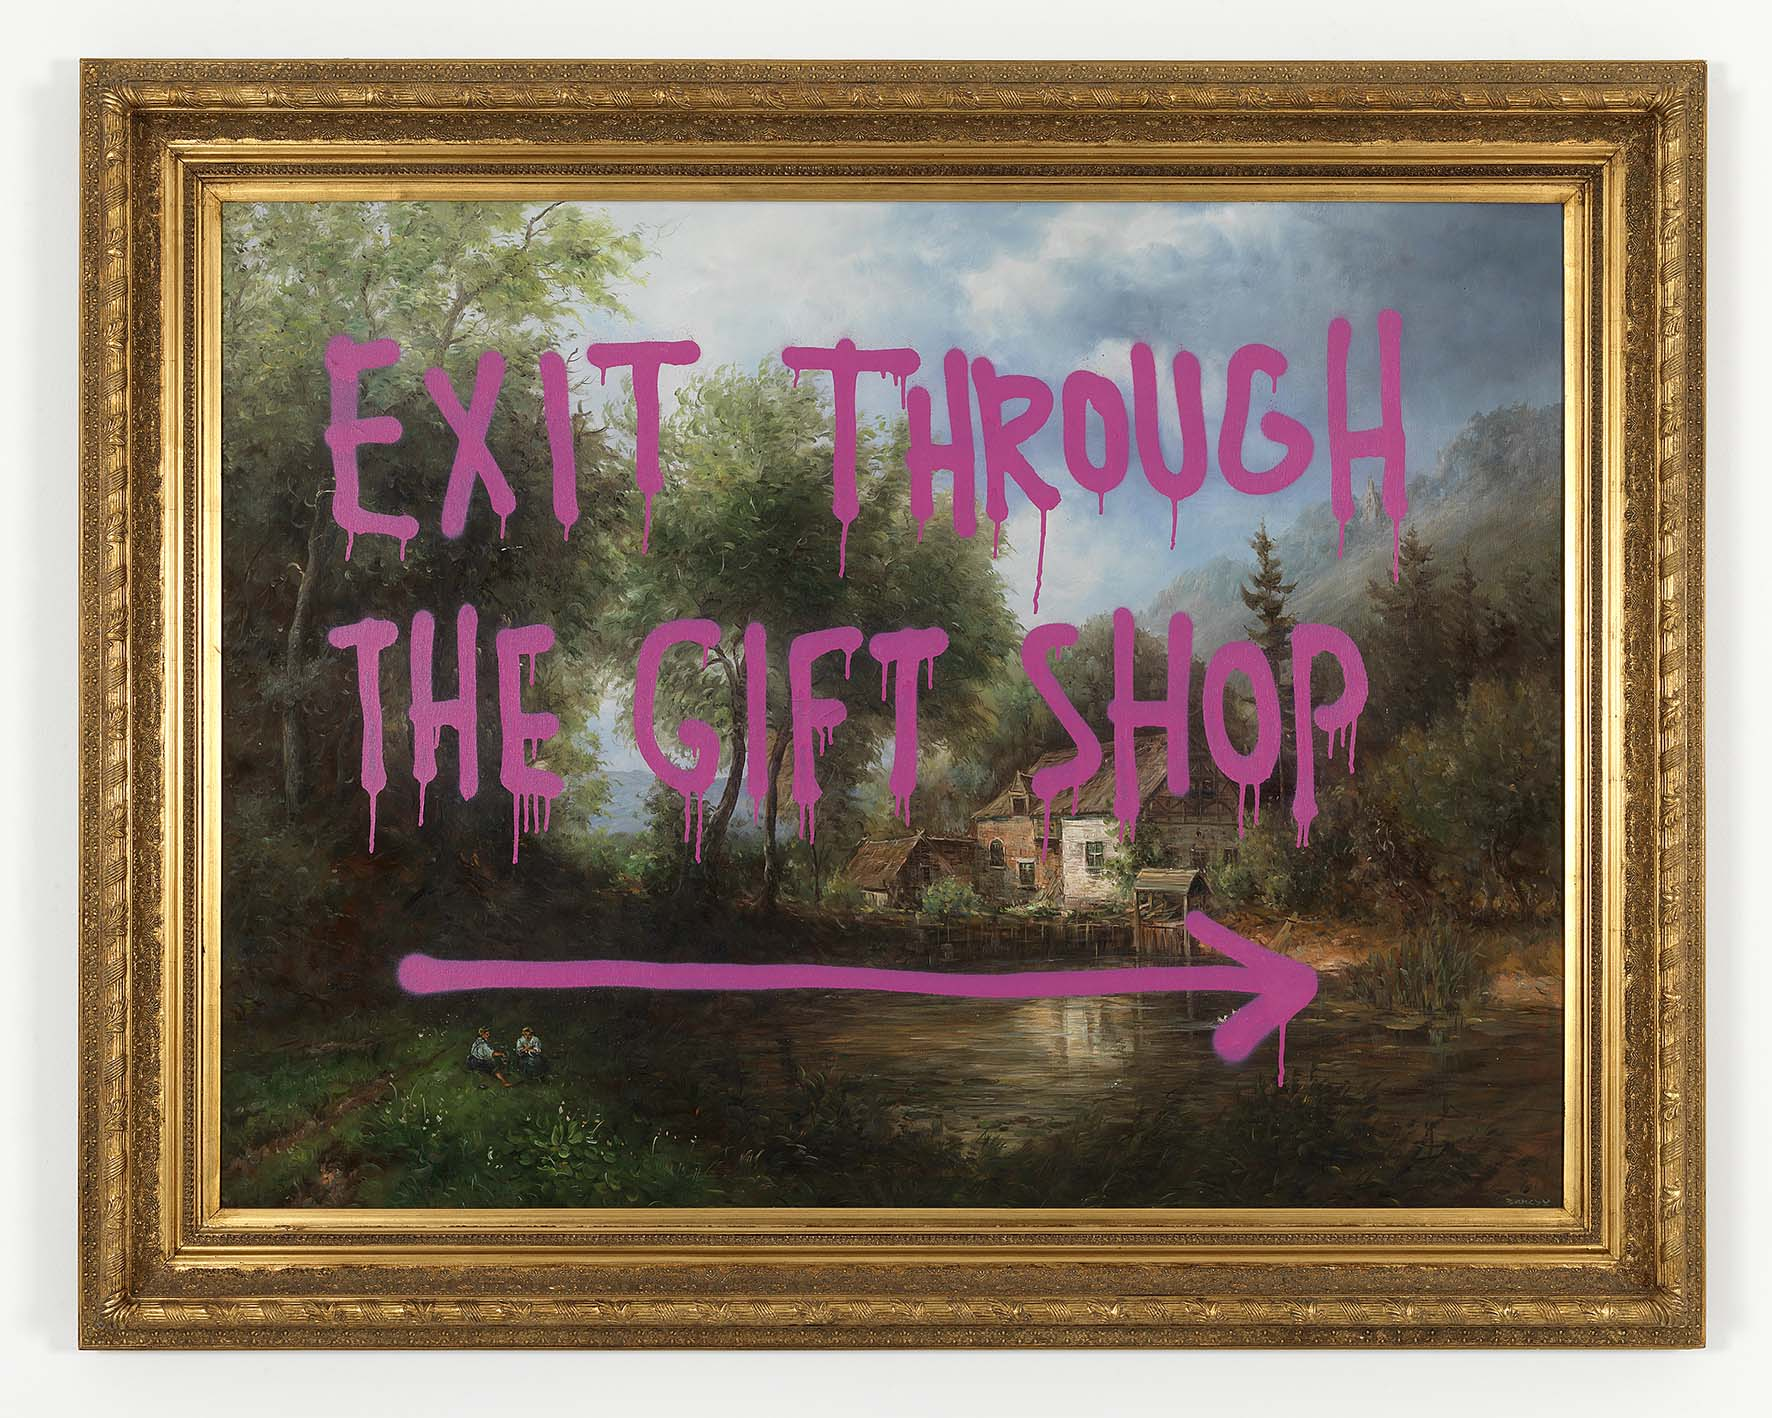 banksy-exit-through-the-gift-shop-frame.jpg